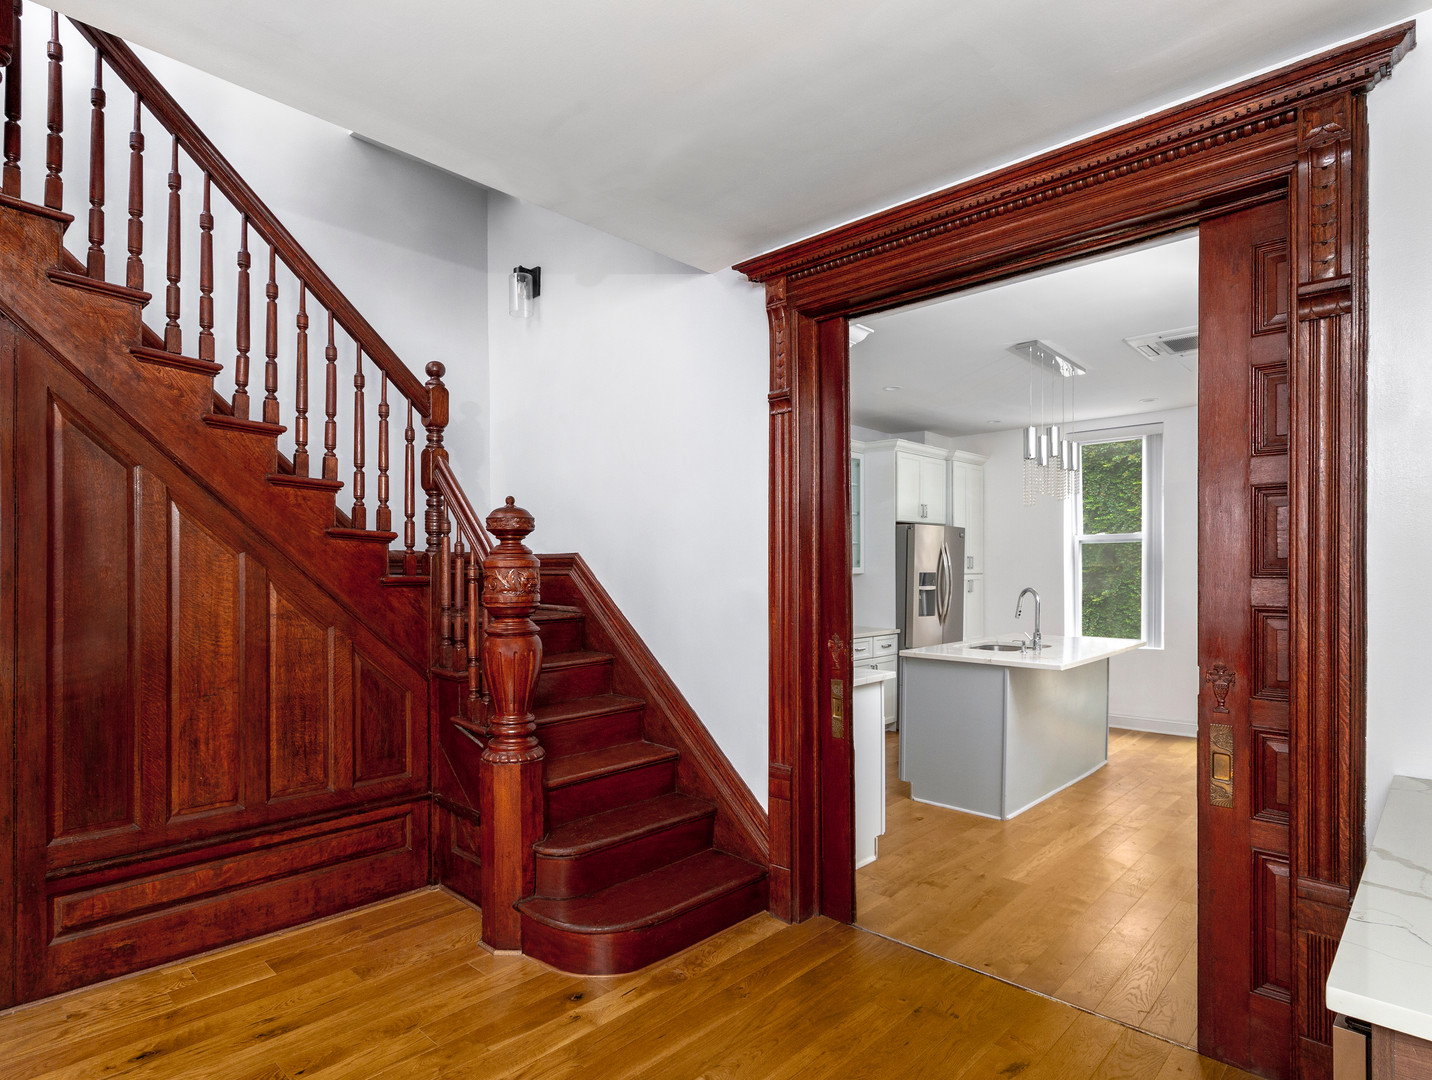 Real Estate Photo of a brownstone staircase in New York City.